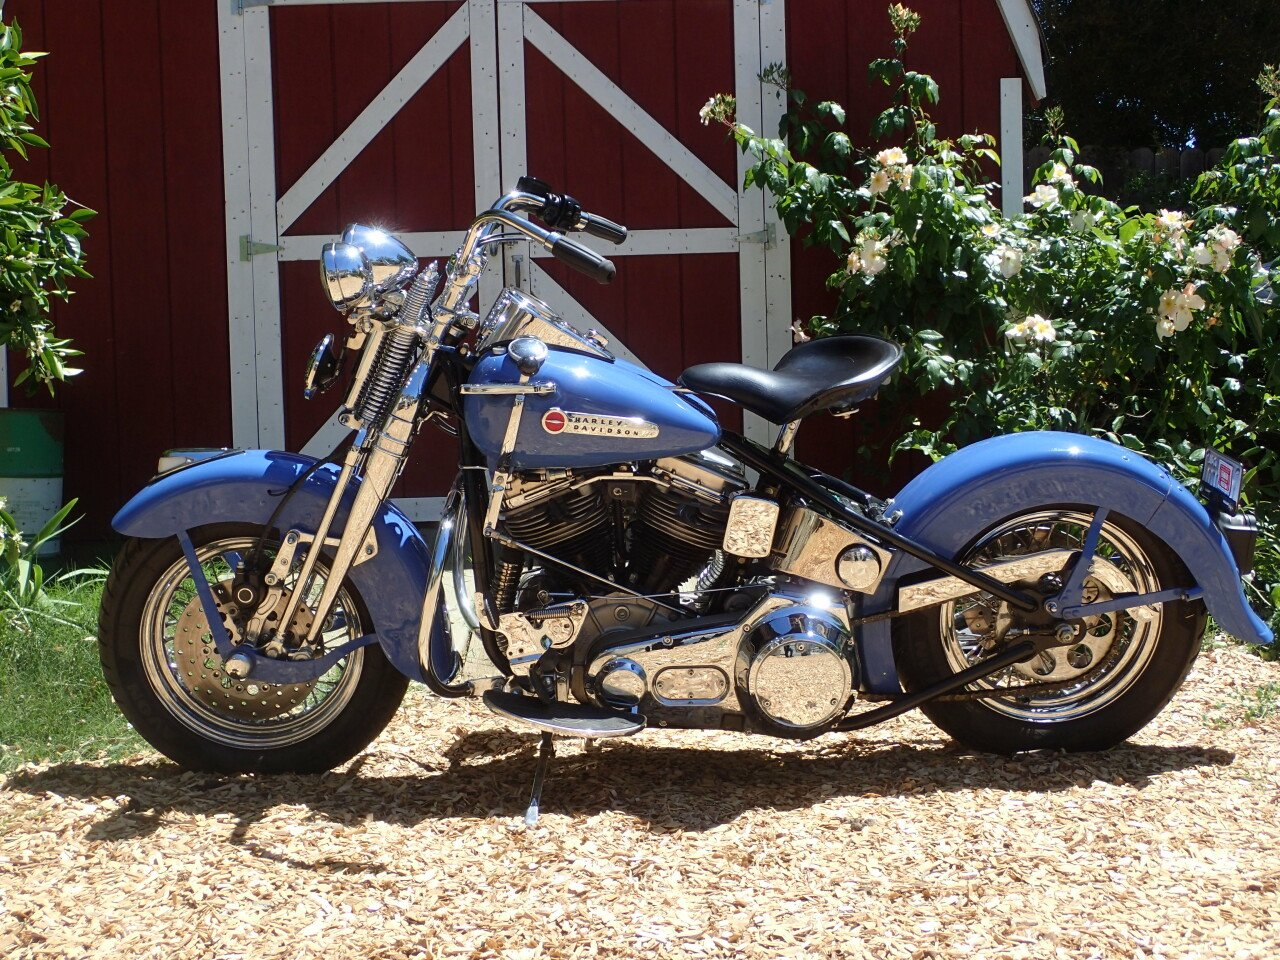 Harley Davidson Motorcycles For Sale California >> 2001 Harley-Davidson Softail Springer for sale near Sacramento, California 95817 - Motorcycles ...